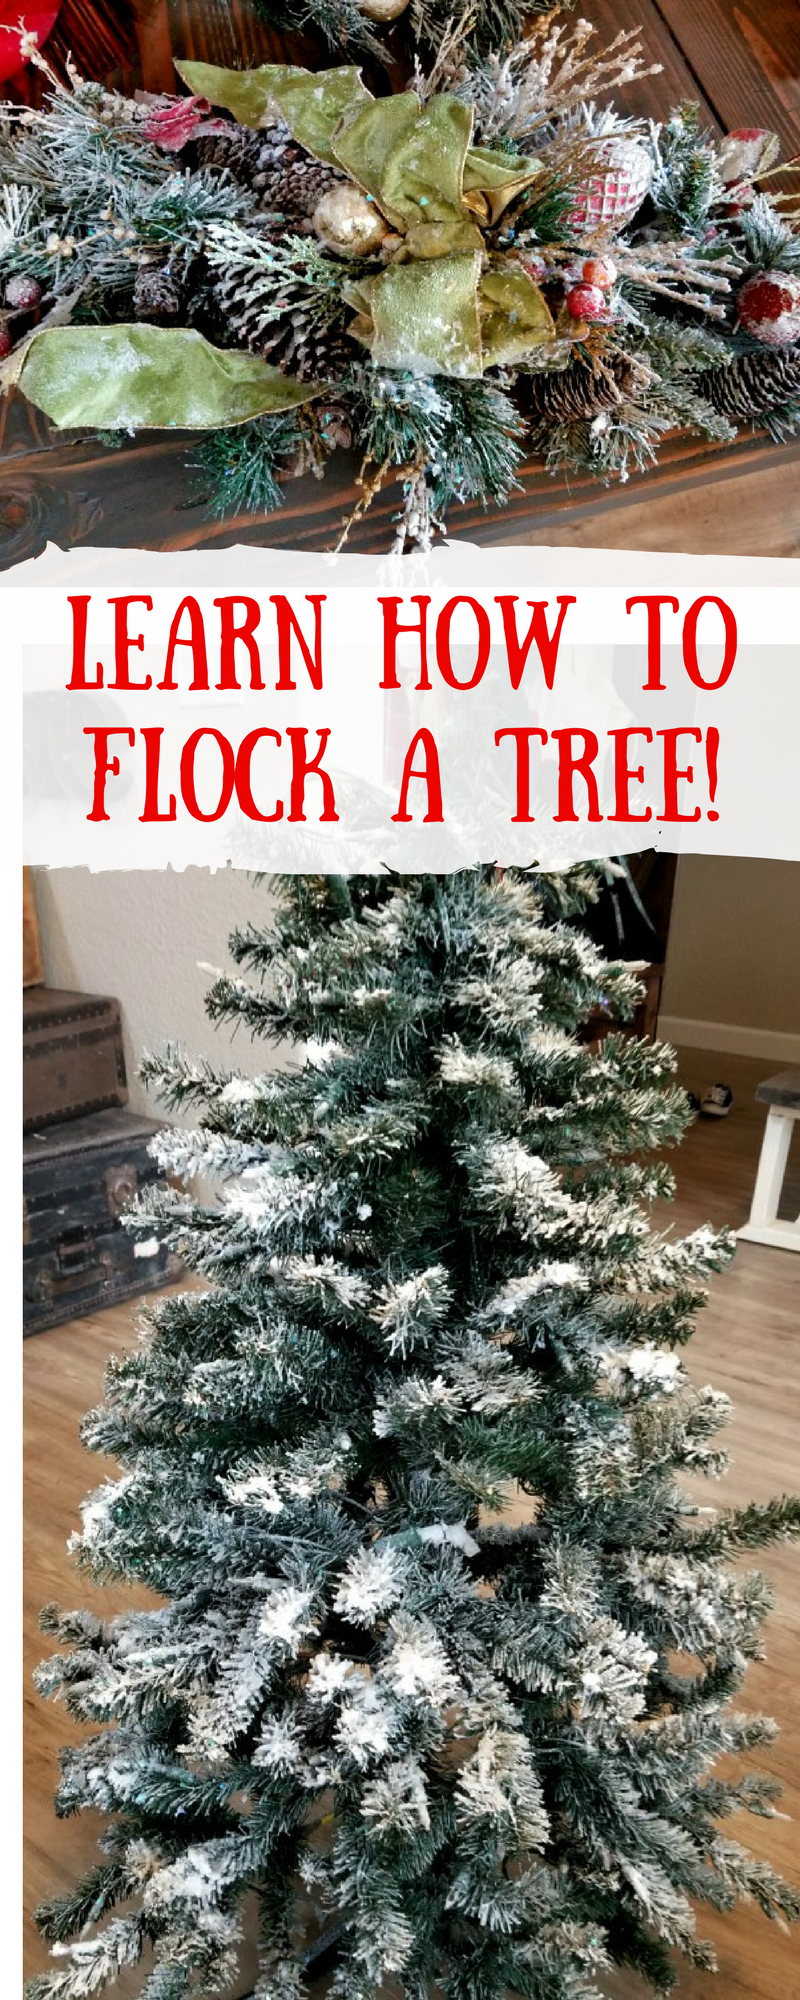 how to flock a tree tree flocking diy flocked christmas tree how to flock a christmas tree tutorial the original snoflock